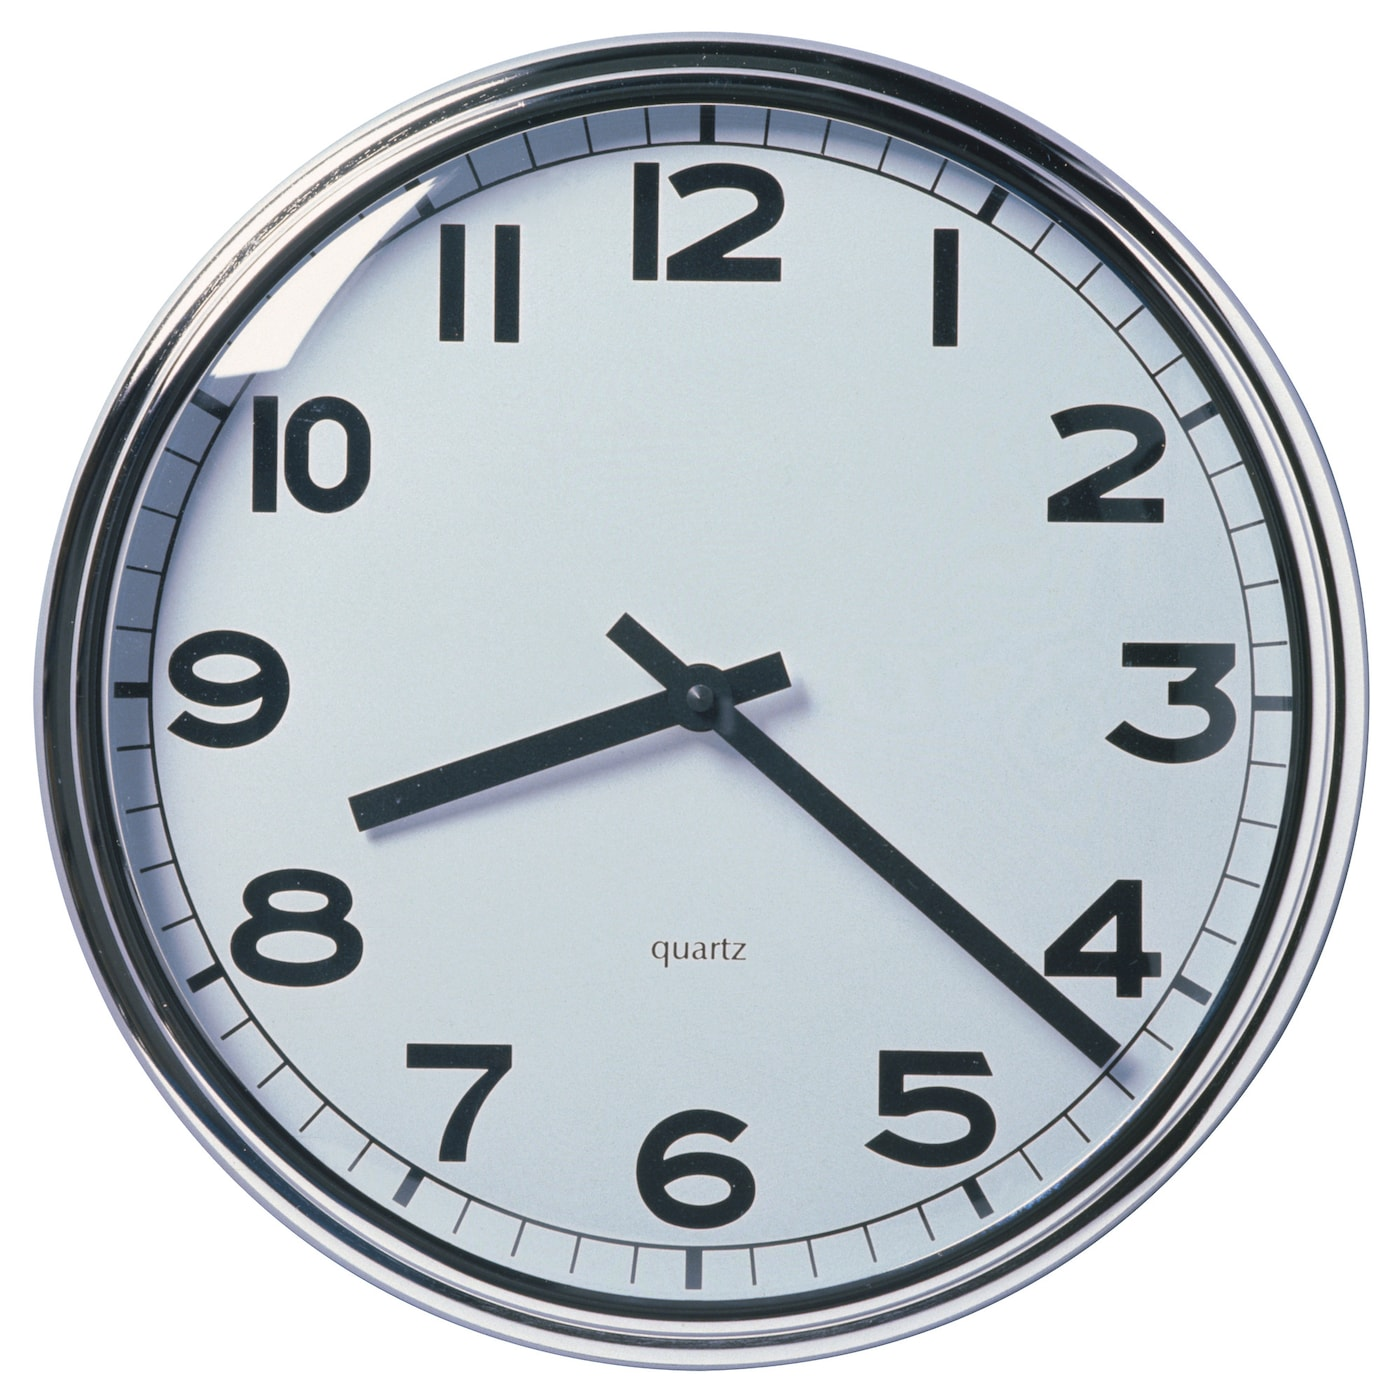 IKEA PUGG wall clock Highly accurate at keeping time as it is fitted with a quartz movement.